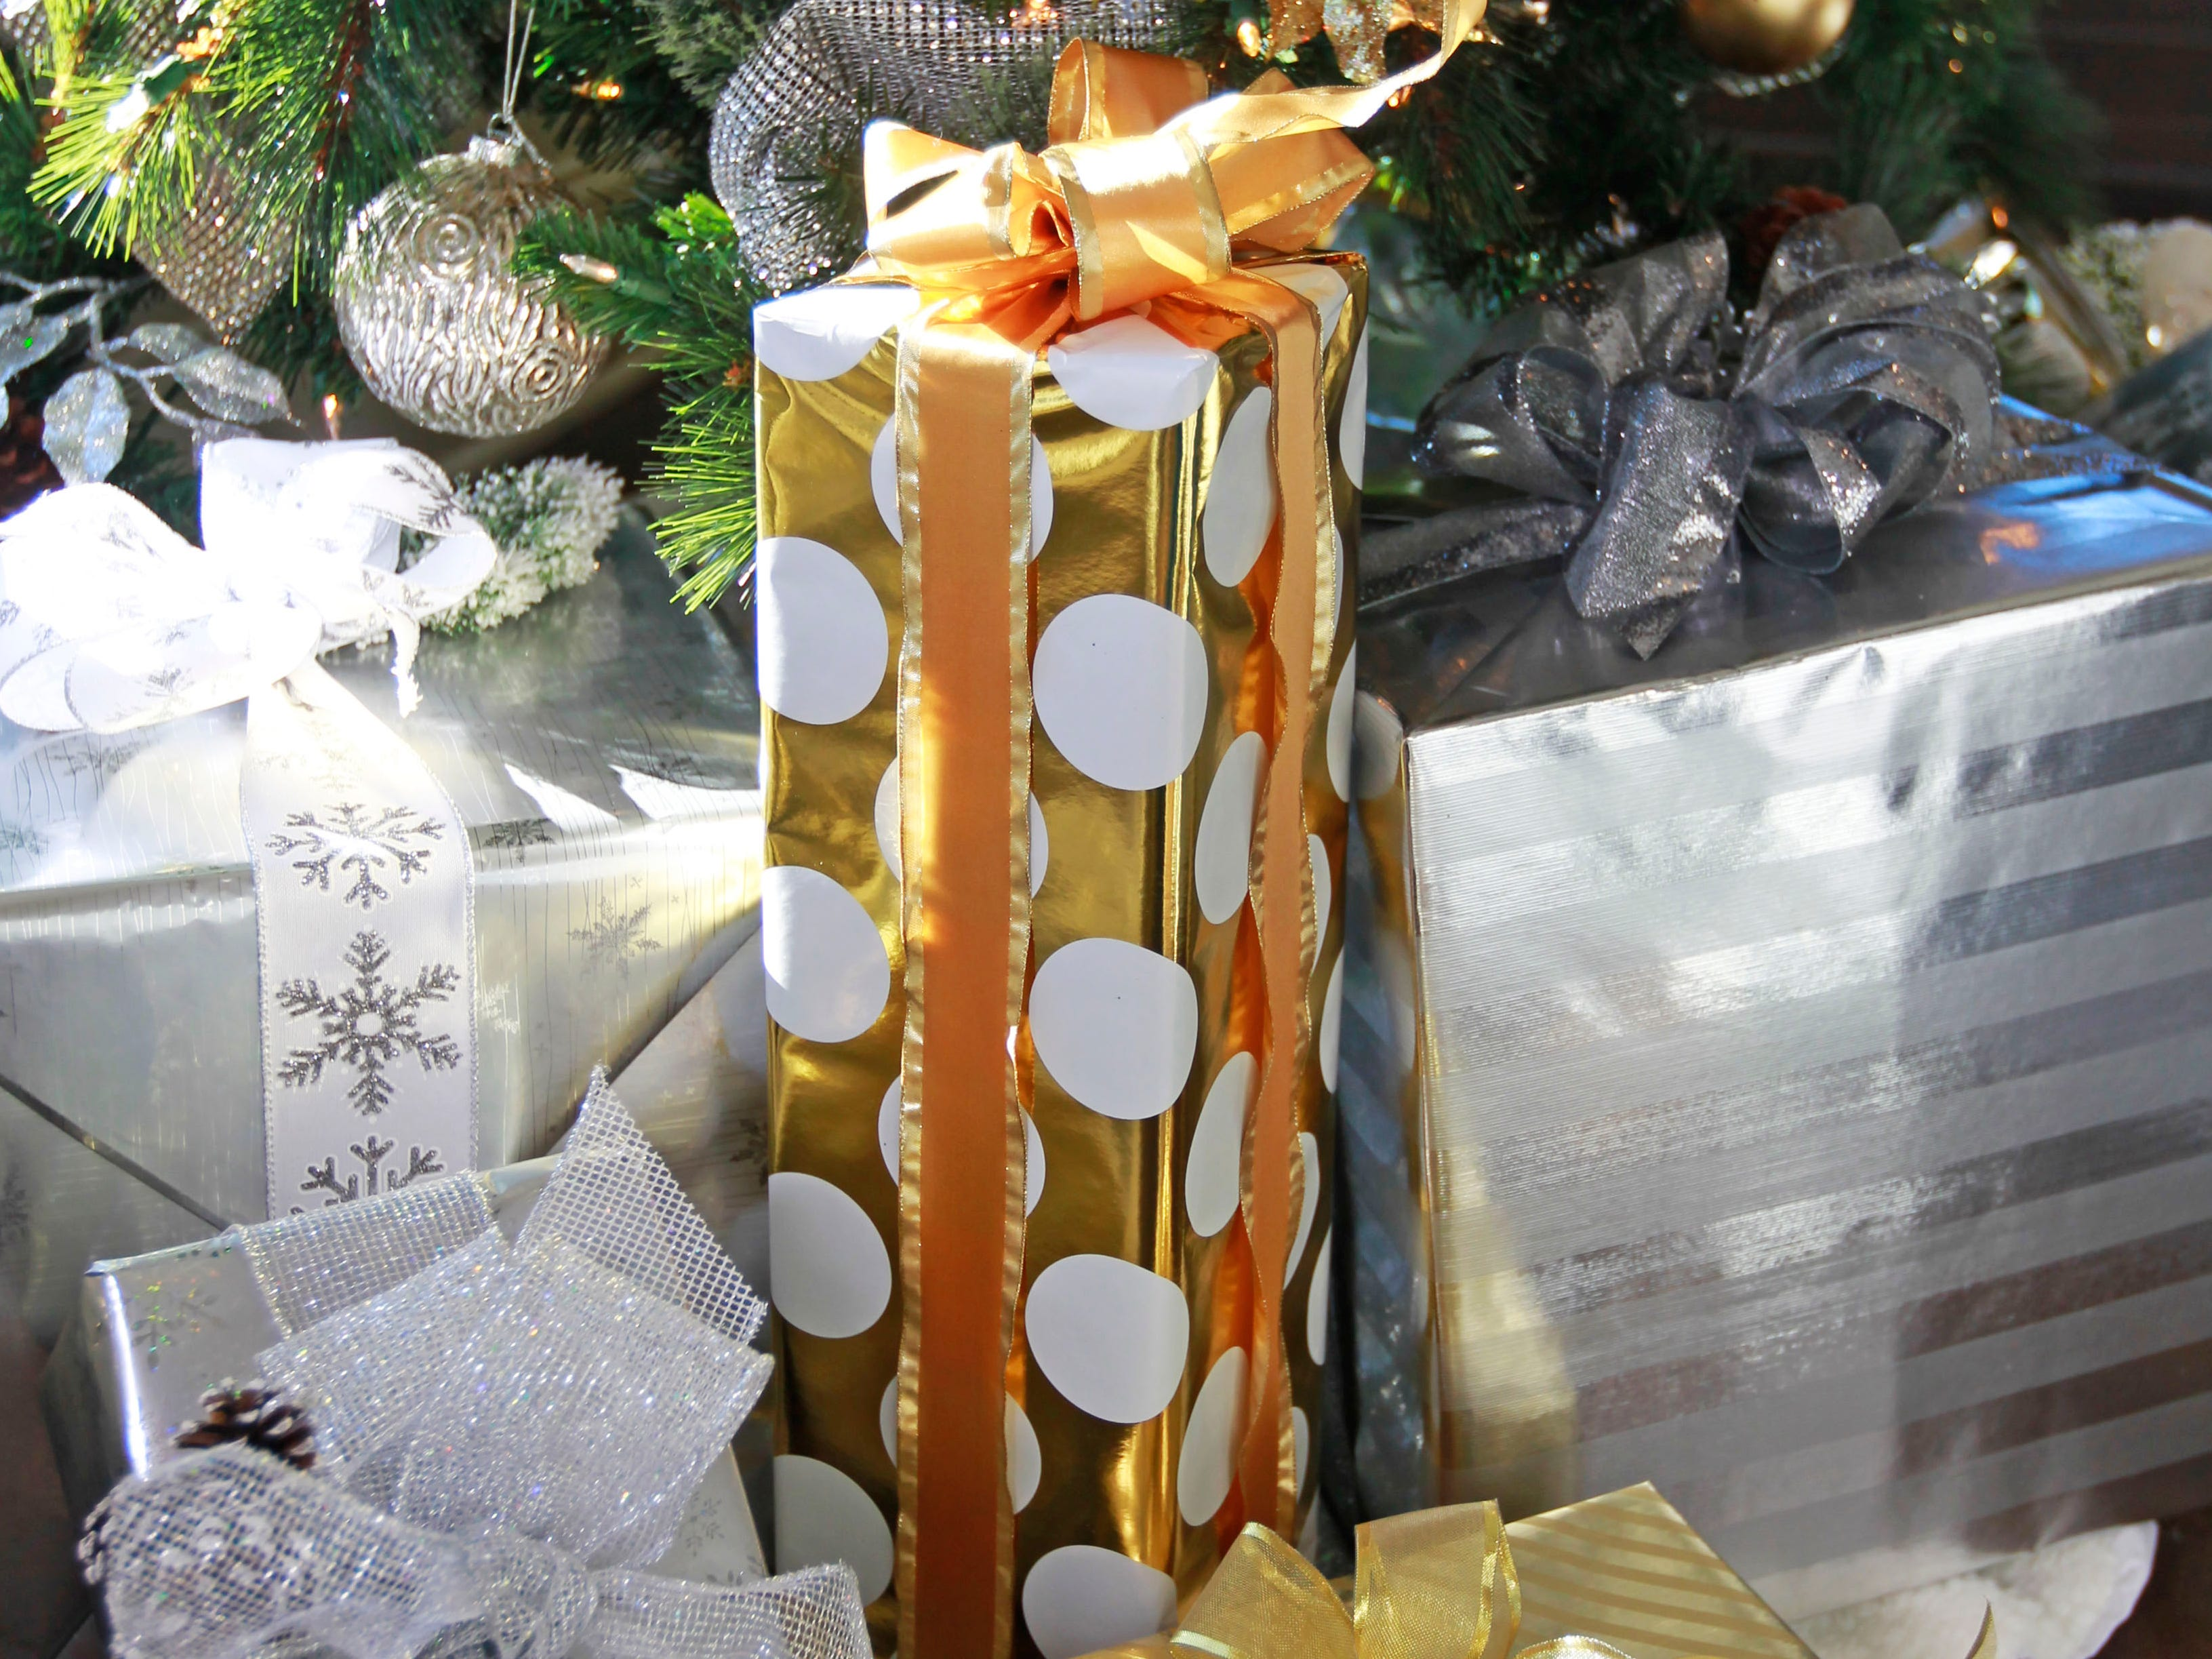 Even the wrapping paper for gifts under the tree are in coordinated silver and gold.